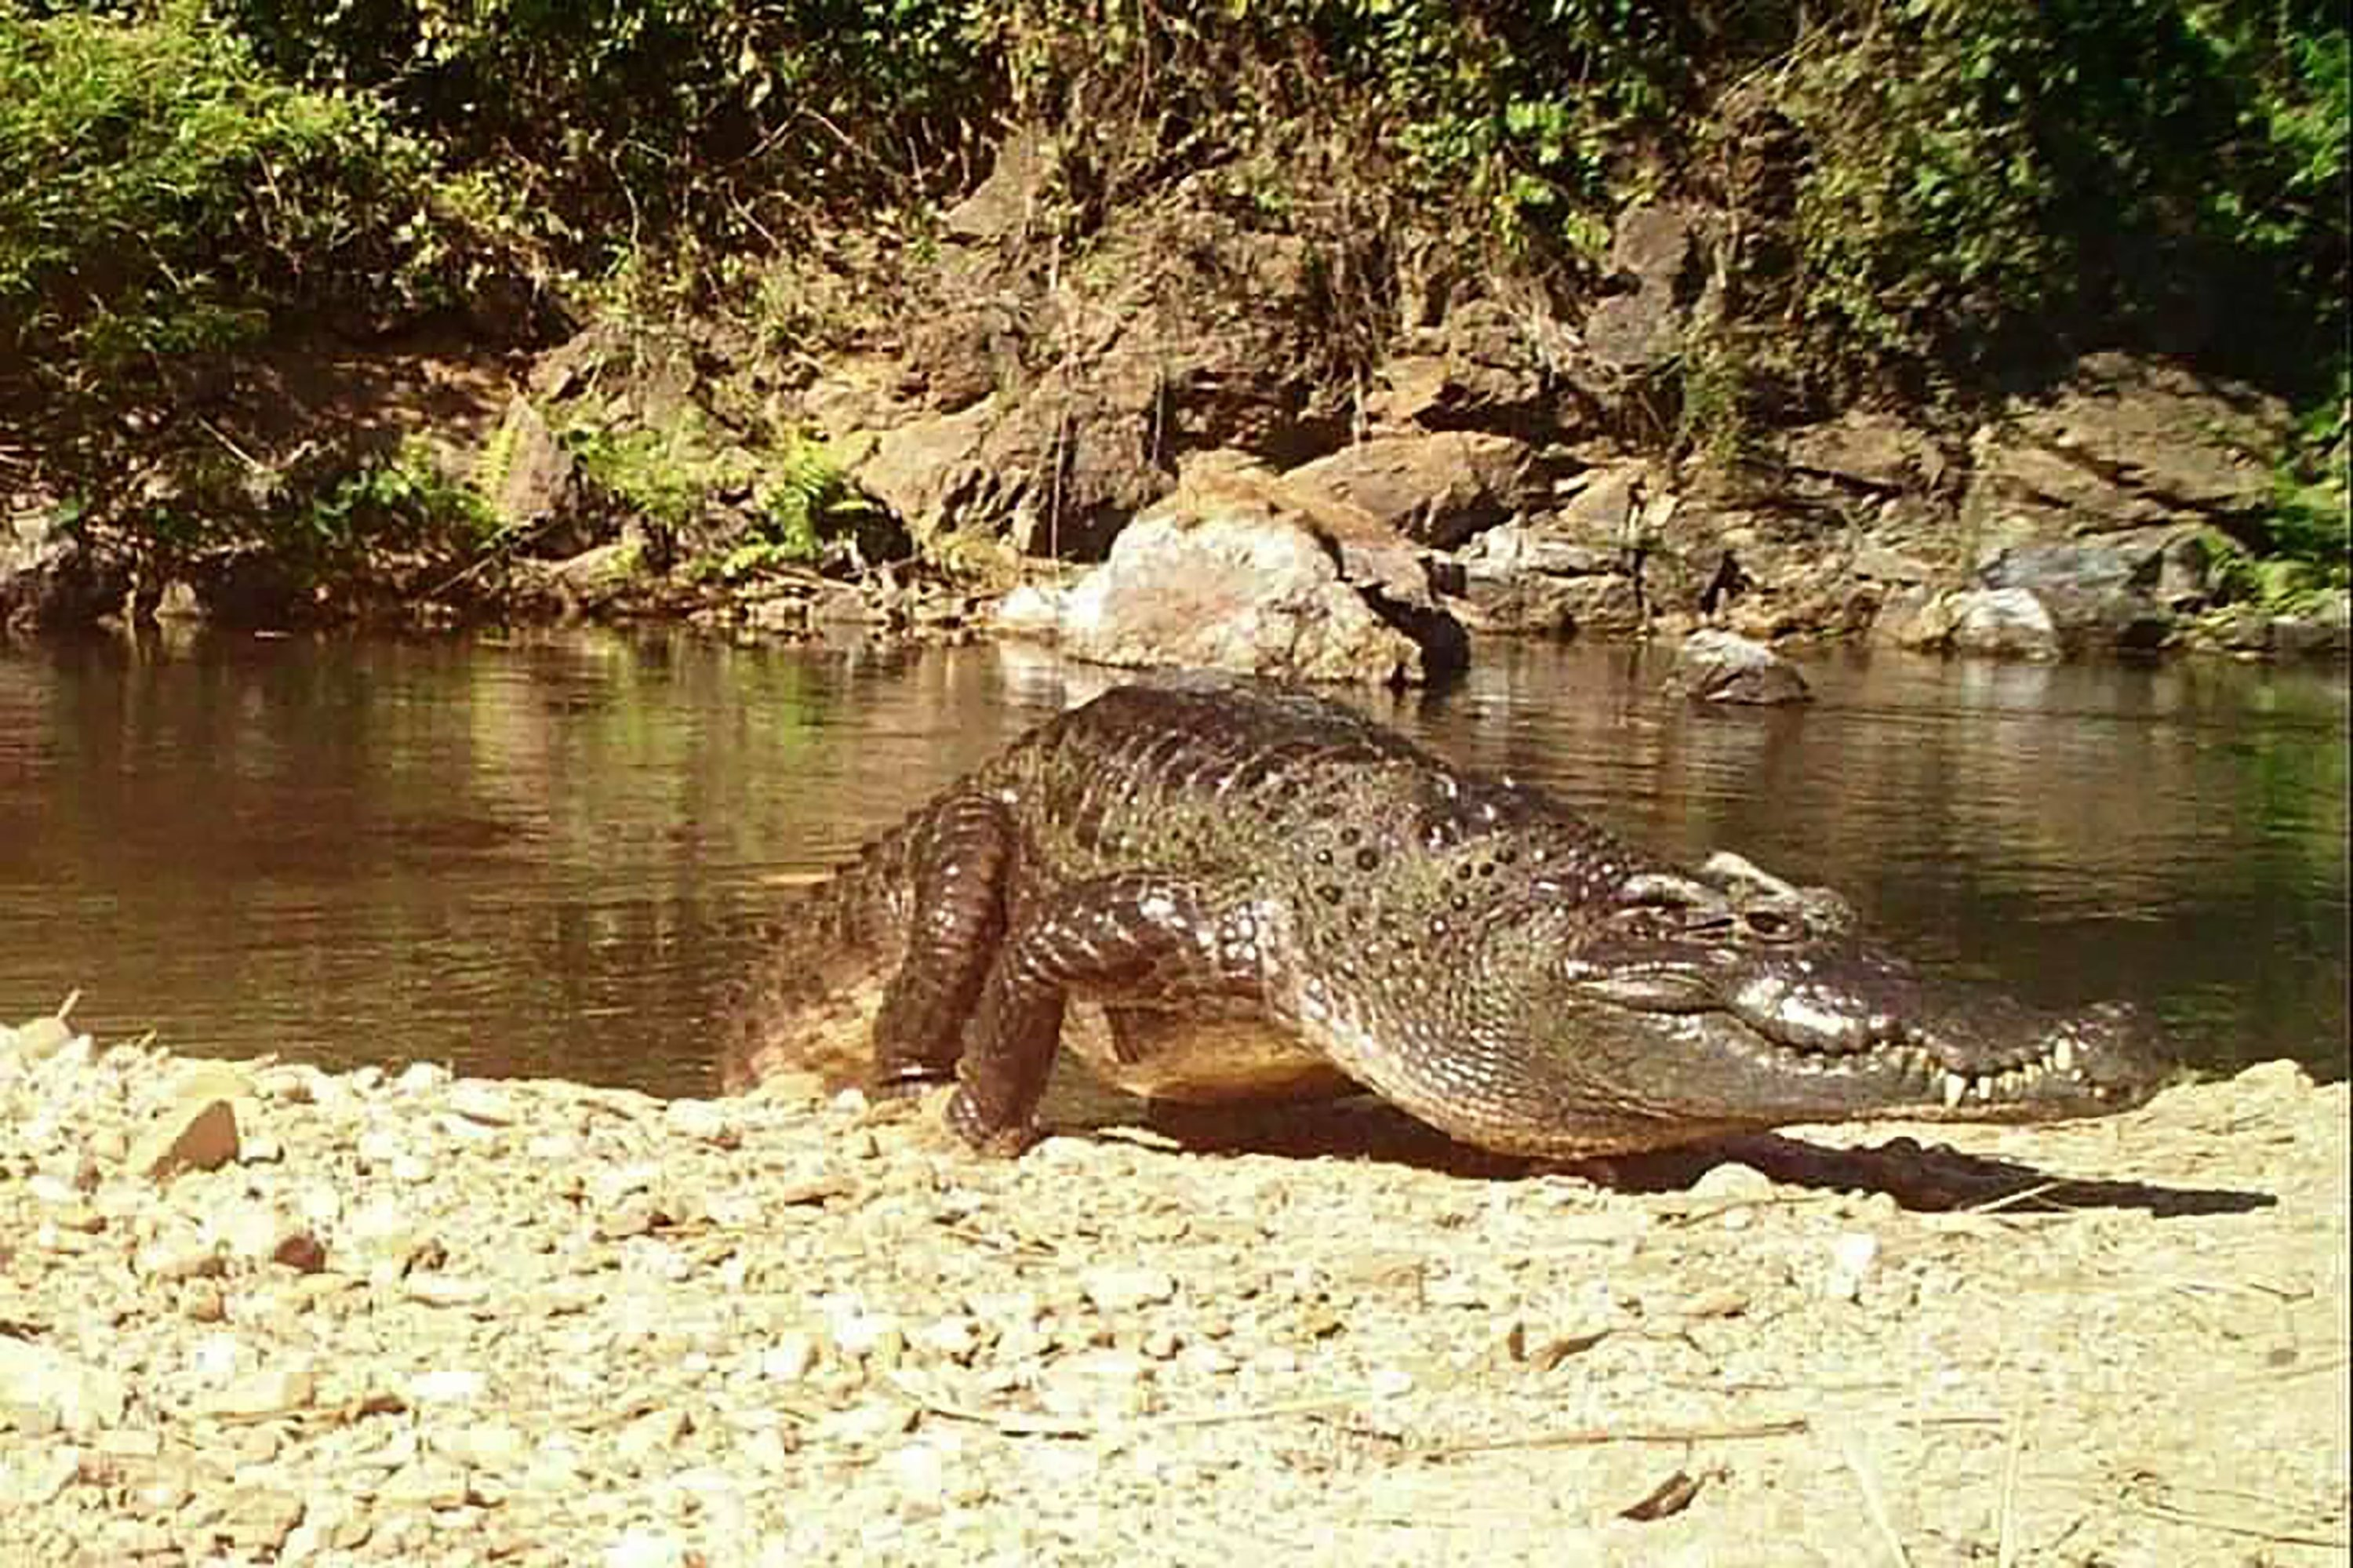 This camera trap photo shows a freshwater Siamese crocodile by Kaeng Krachan National Park, Thailand on Jan. 23, 2021. (AFP Photo)